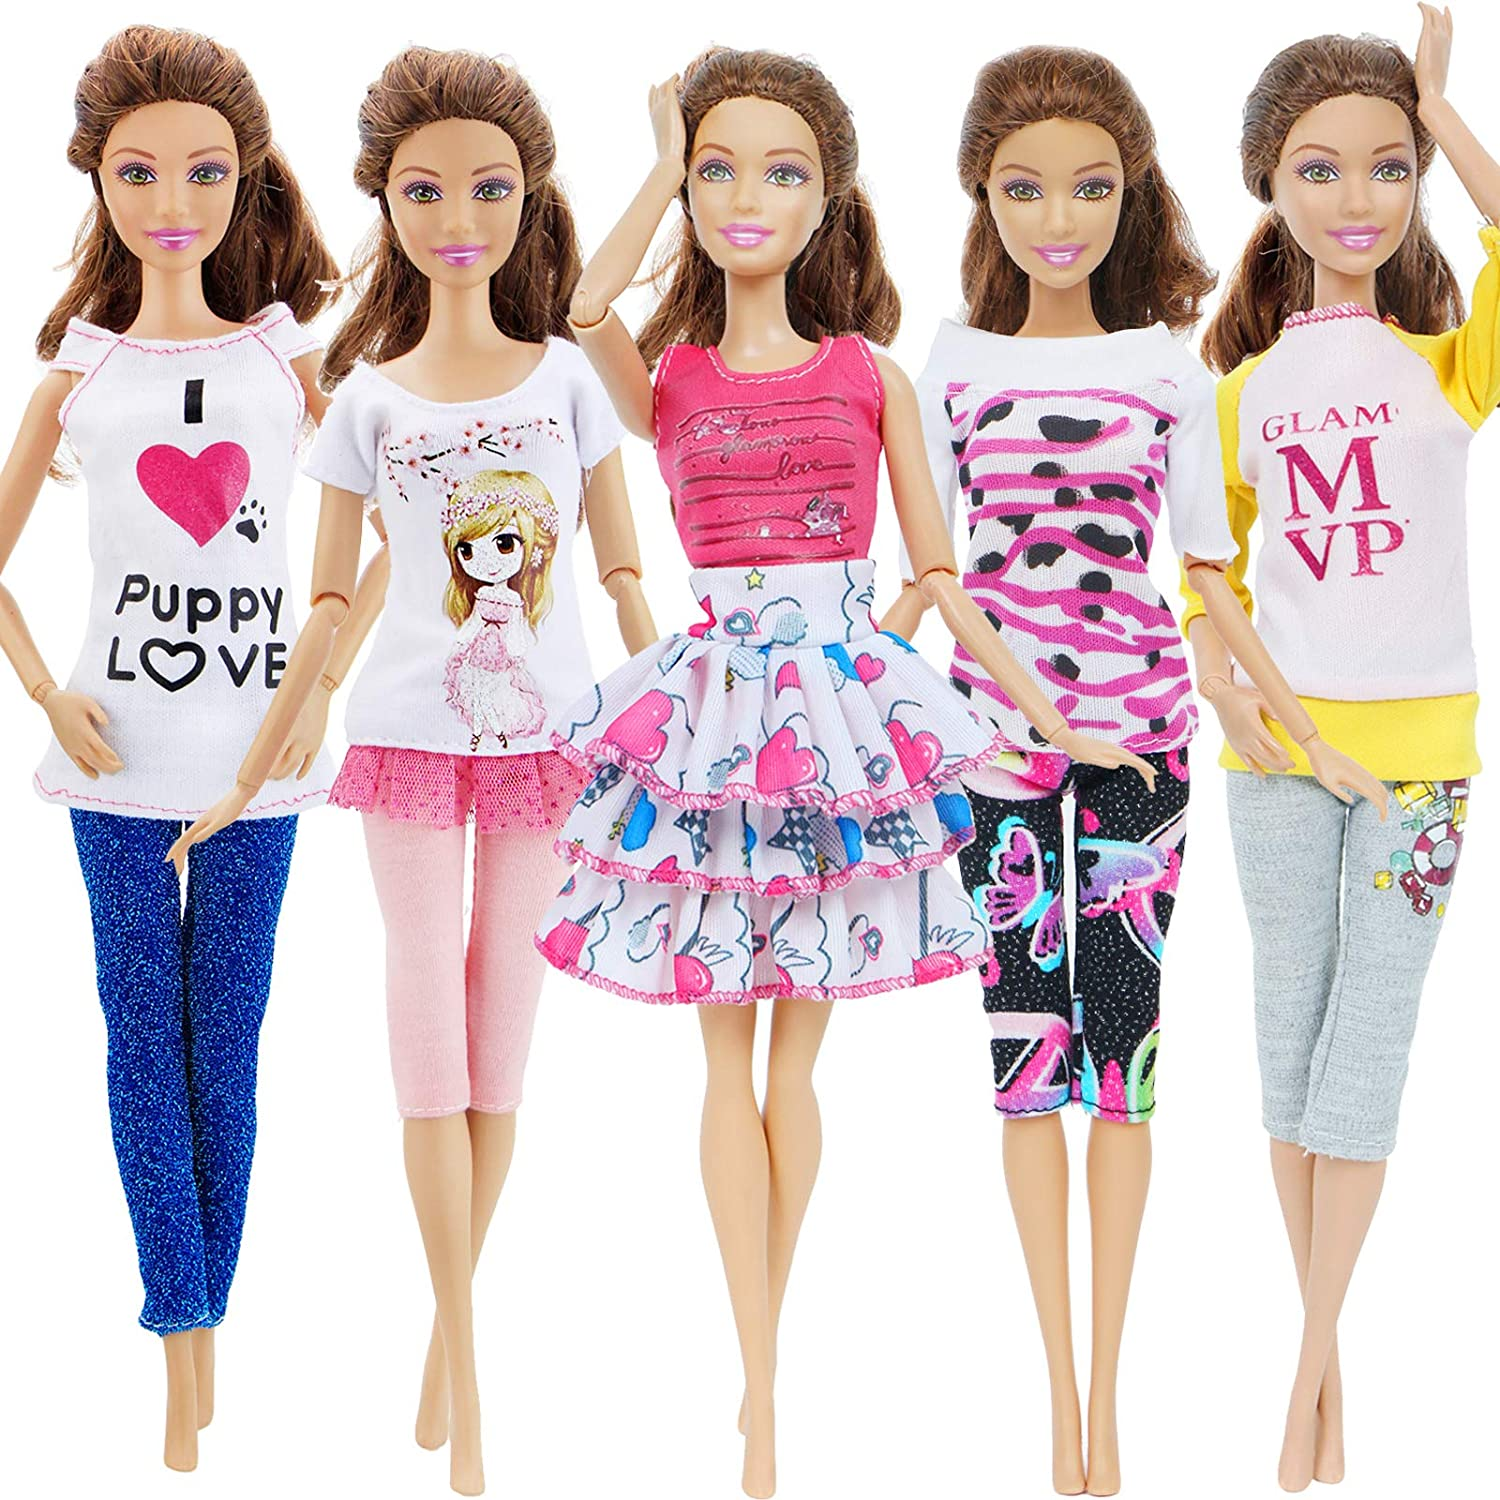 """Pants 5 Sets Clothes for 11.5/"""" Girl Doll Mix Shirt 5 Pairs Shoes Acces Random"""